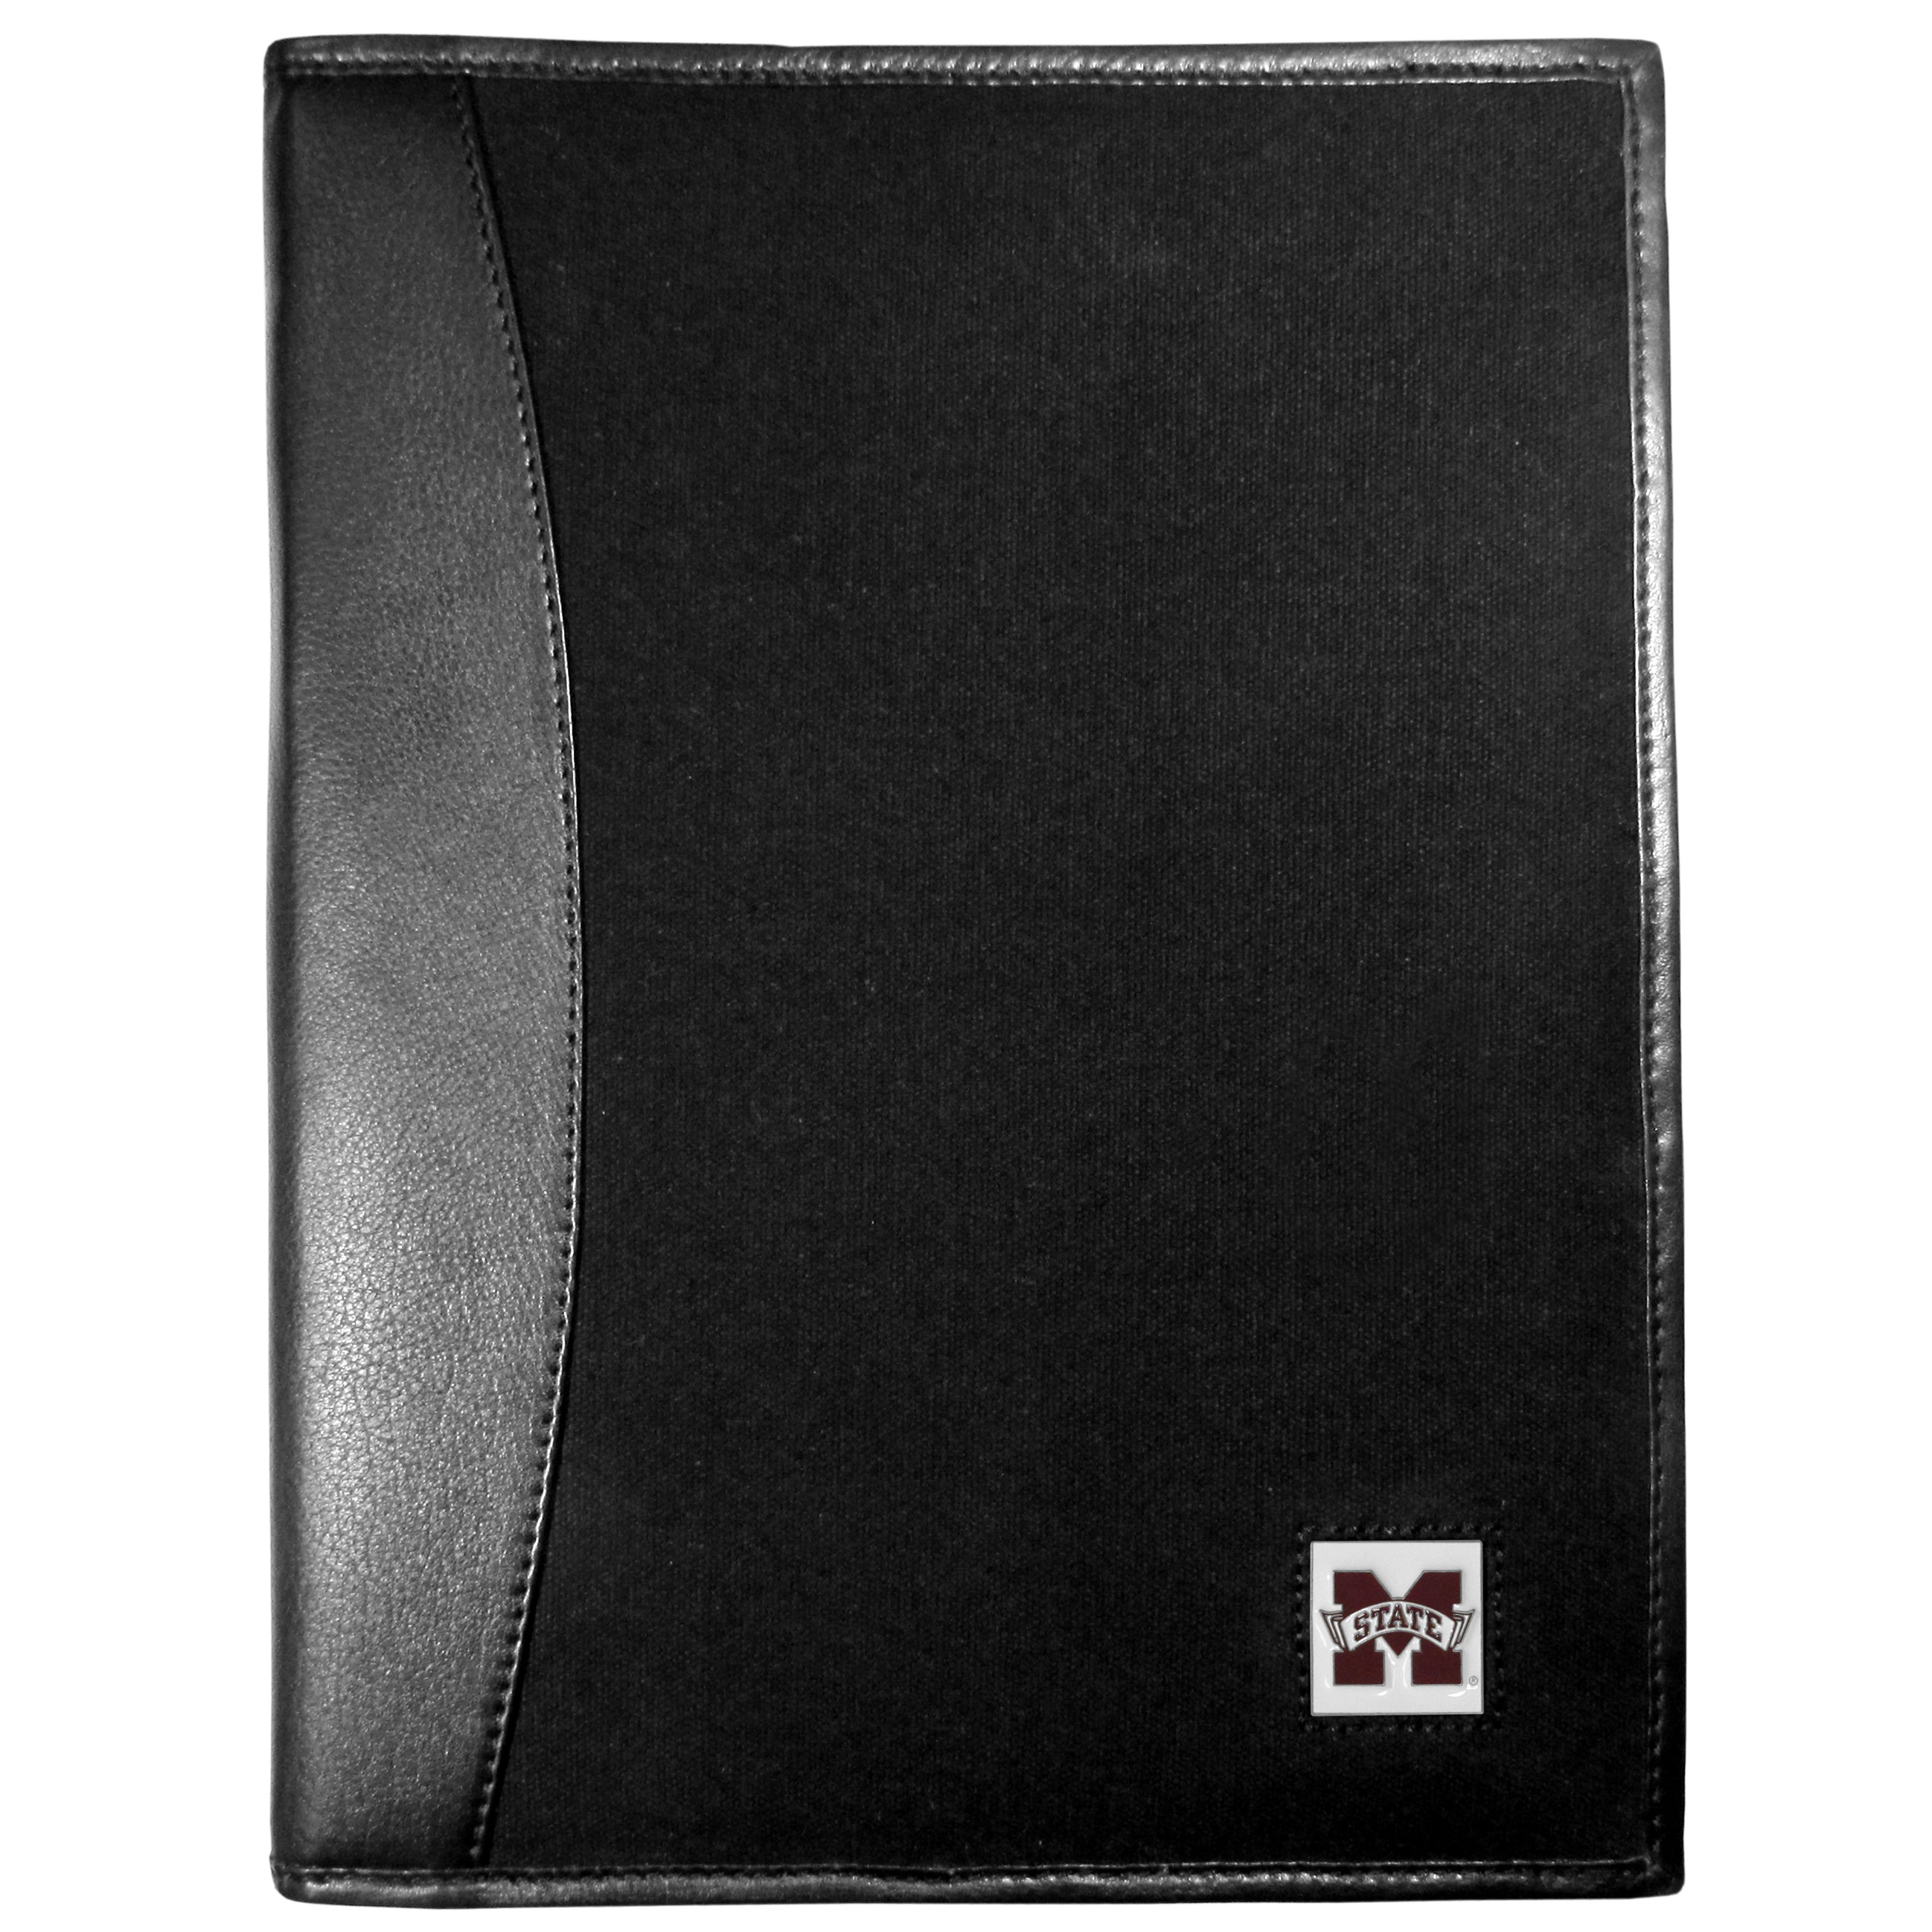 Mississippi St. Bulldogs Leather and Canvas Padfolio - Our leather and canvas padfolio perfectly blends form and function. The attractive portfolio is bound in fine grain leather with an attractive canvas finish and the interior is a soft nylon. This high quality business accessory also features a fully cast metal Mississippi St. Bulldogs emblem that is subtly set in the corner of the organizer. It is packed with features like 6 card slots for badges, business cards, hotel keys or credit cards and ID with a large pocket for loose papers and a writing tablet slot making it a must-have for the professional on the go.